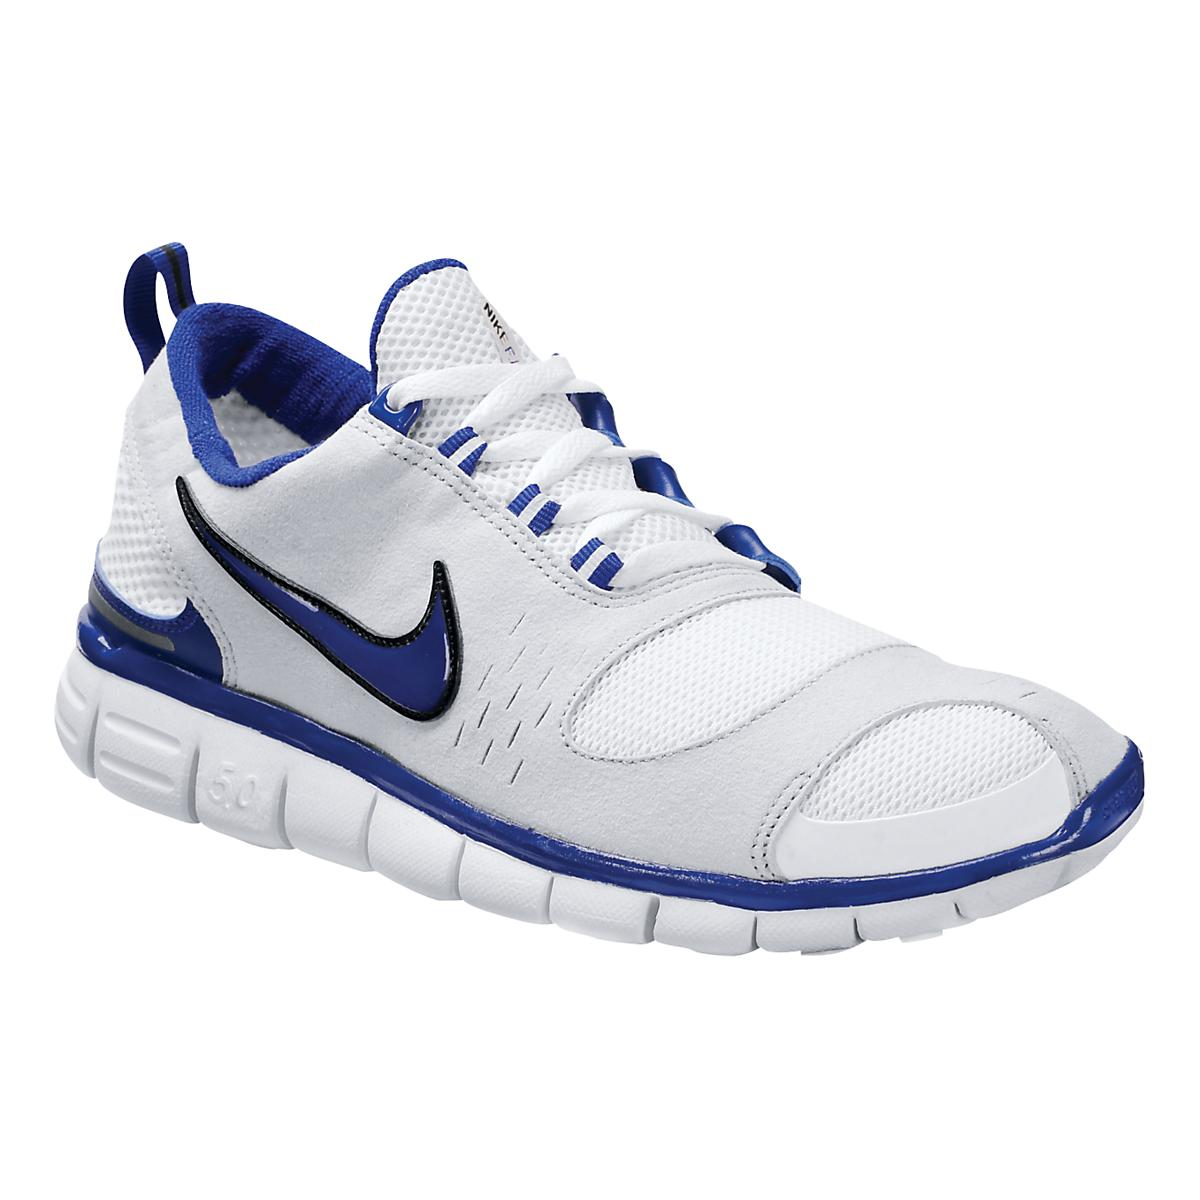 Mens Nike Free 5.0 v2 Running Shoe at Road Runner Sports